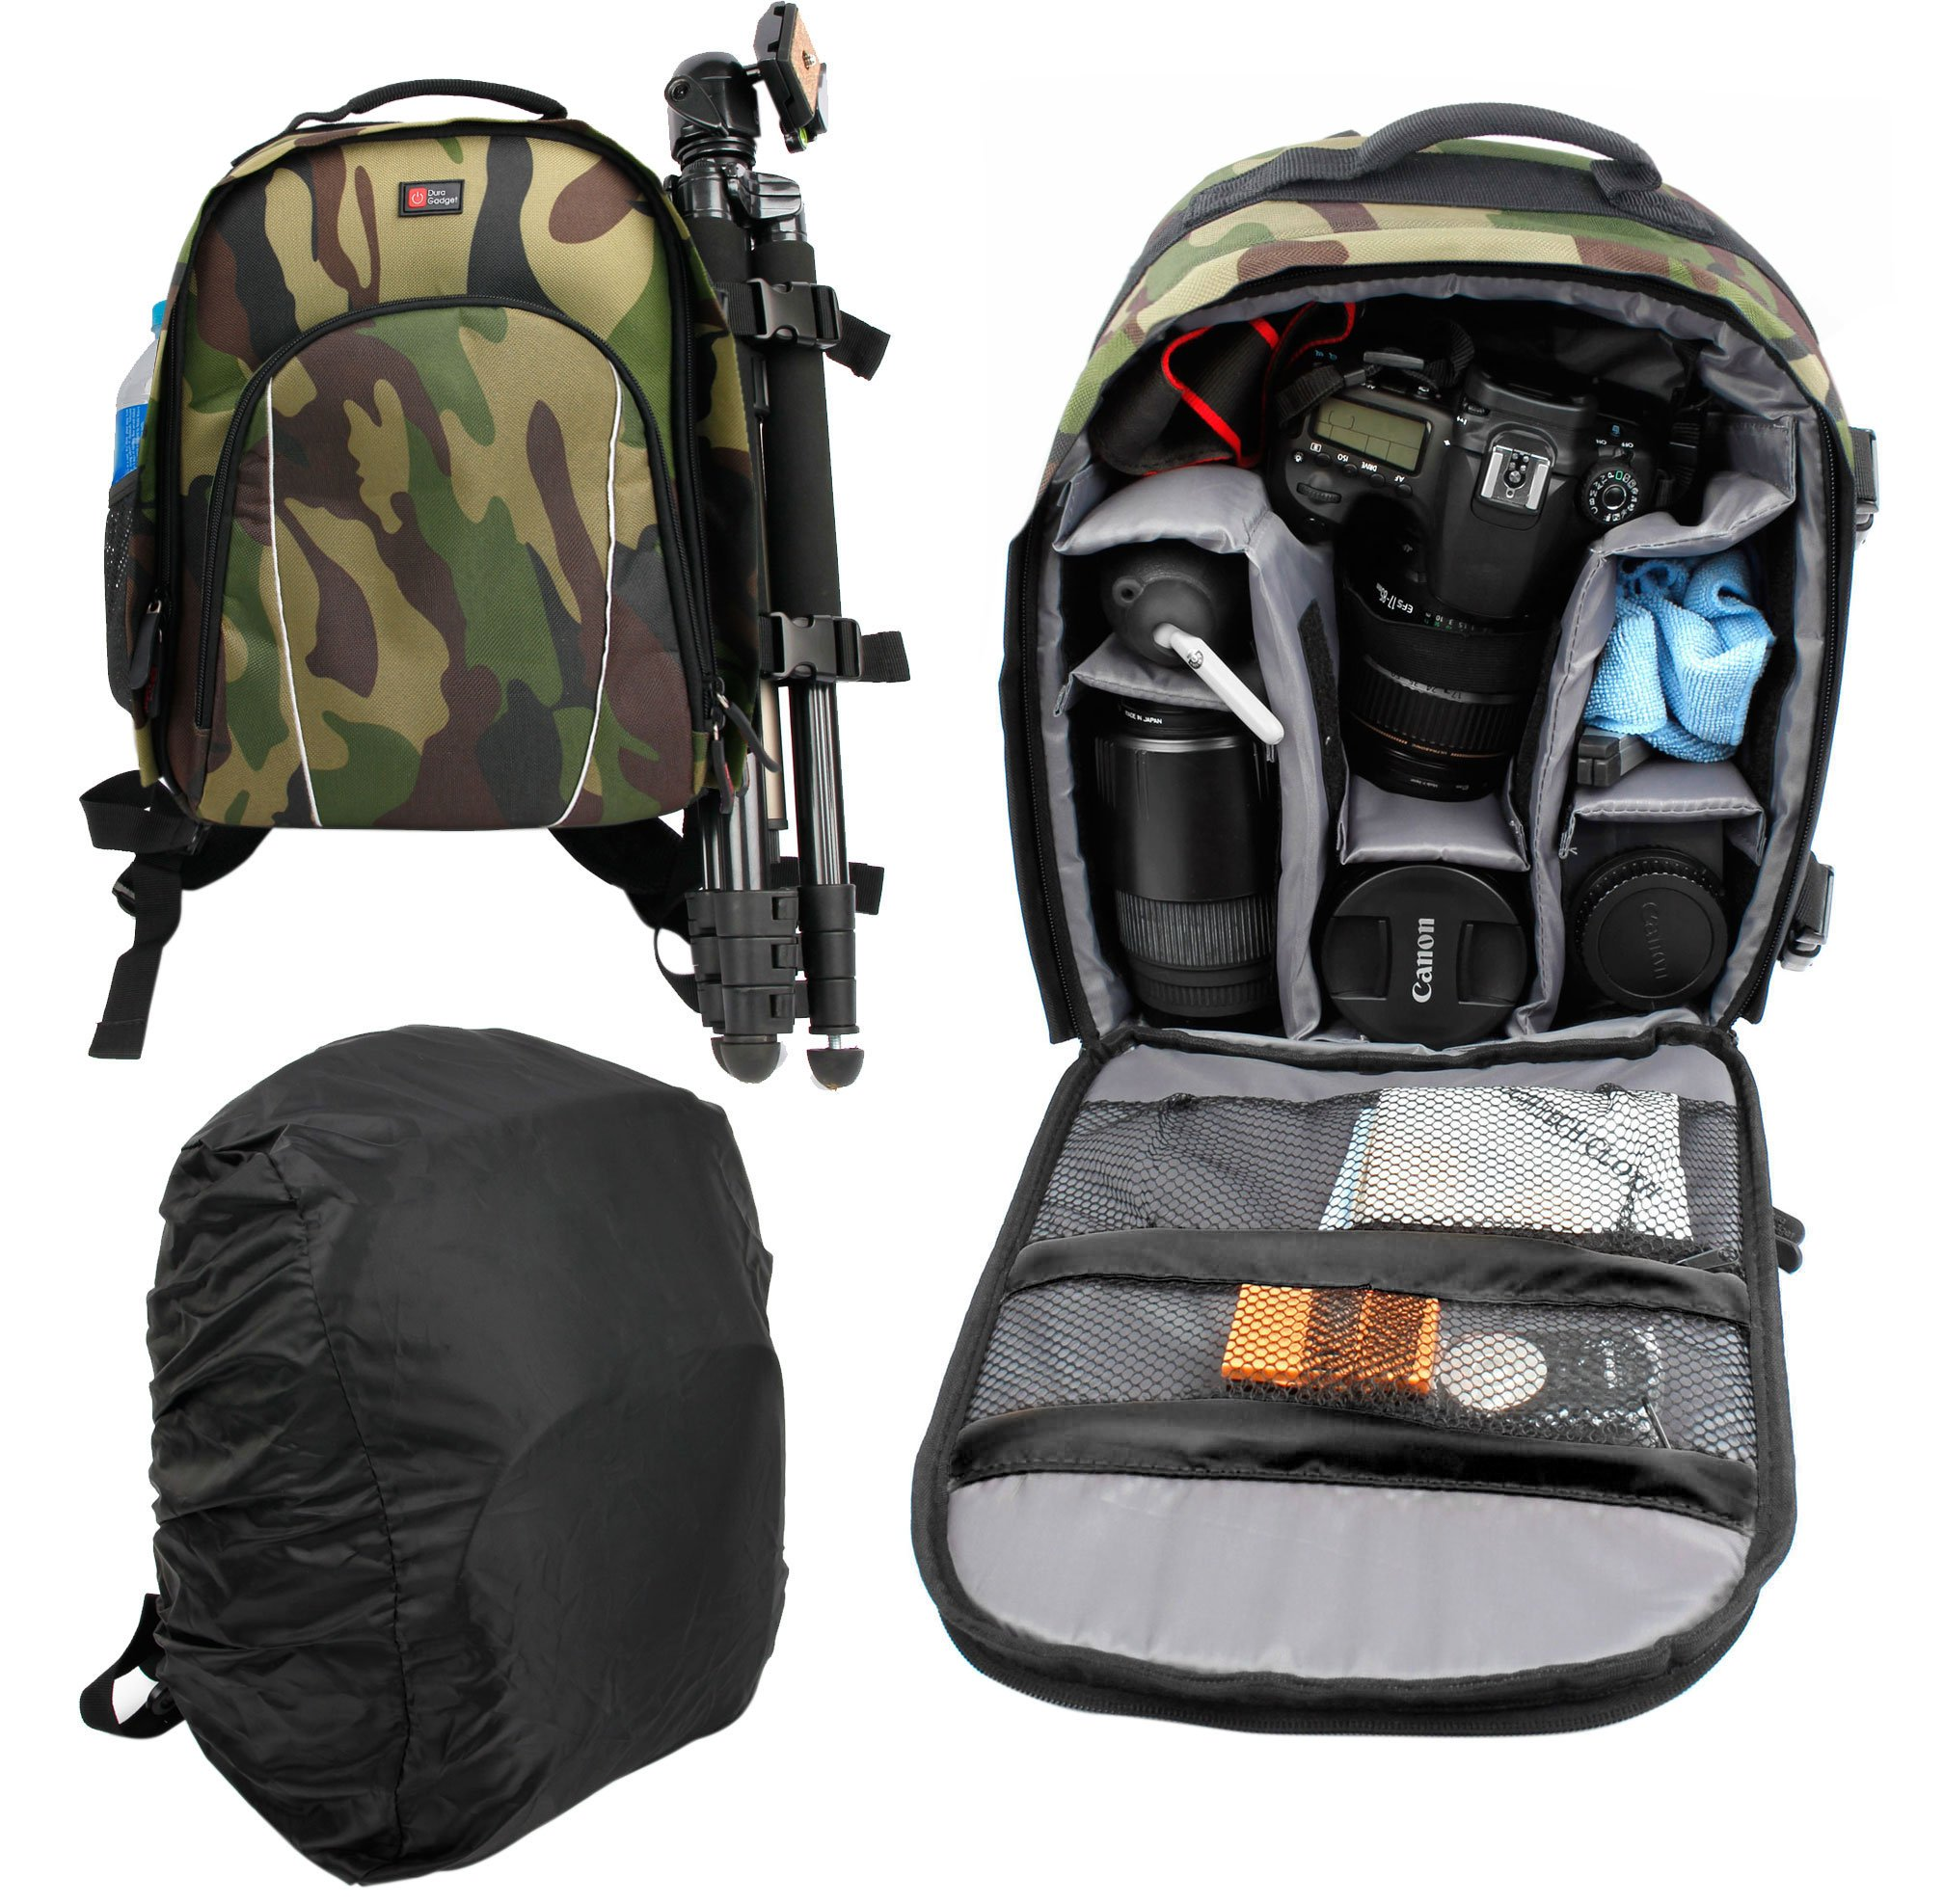 DURAGADGET Camouflage Water-Resistant Backpack with Customizable Interior & Raincover For Celestron ECLIPSMART 10X25 SOLAR